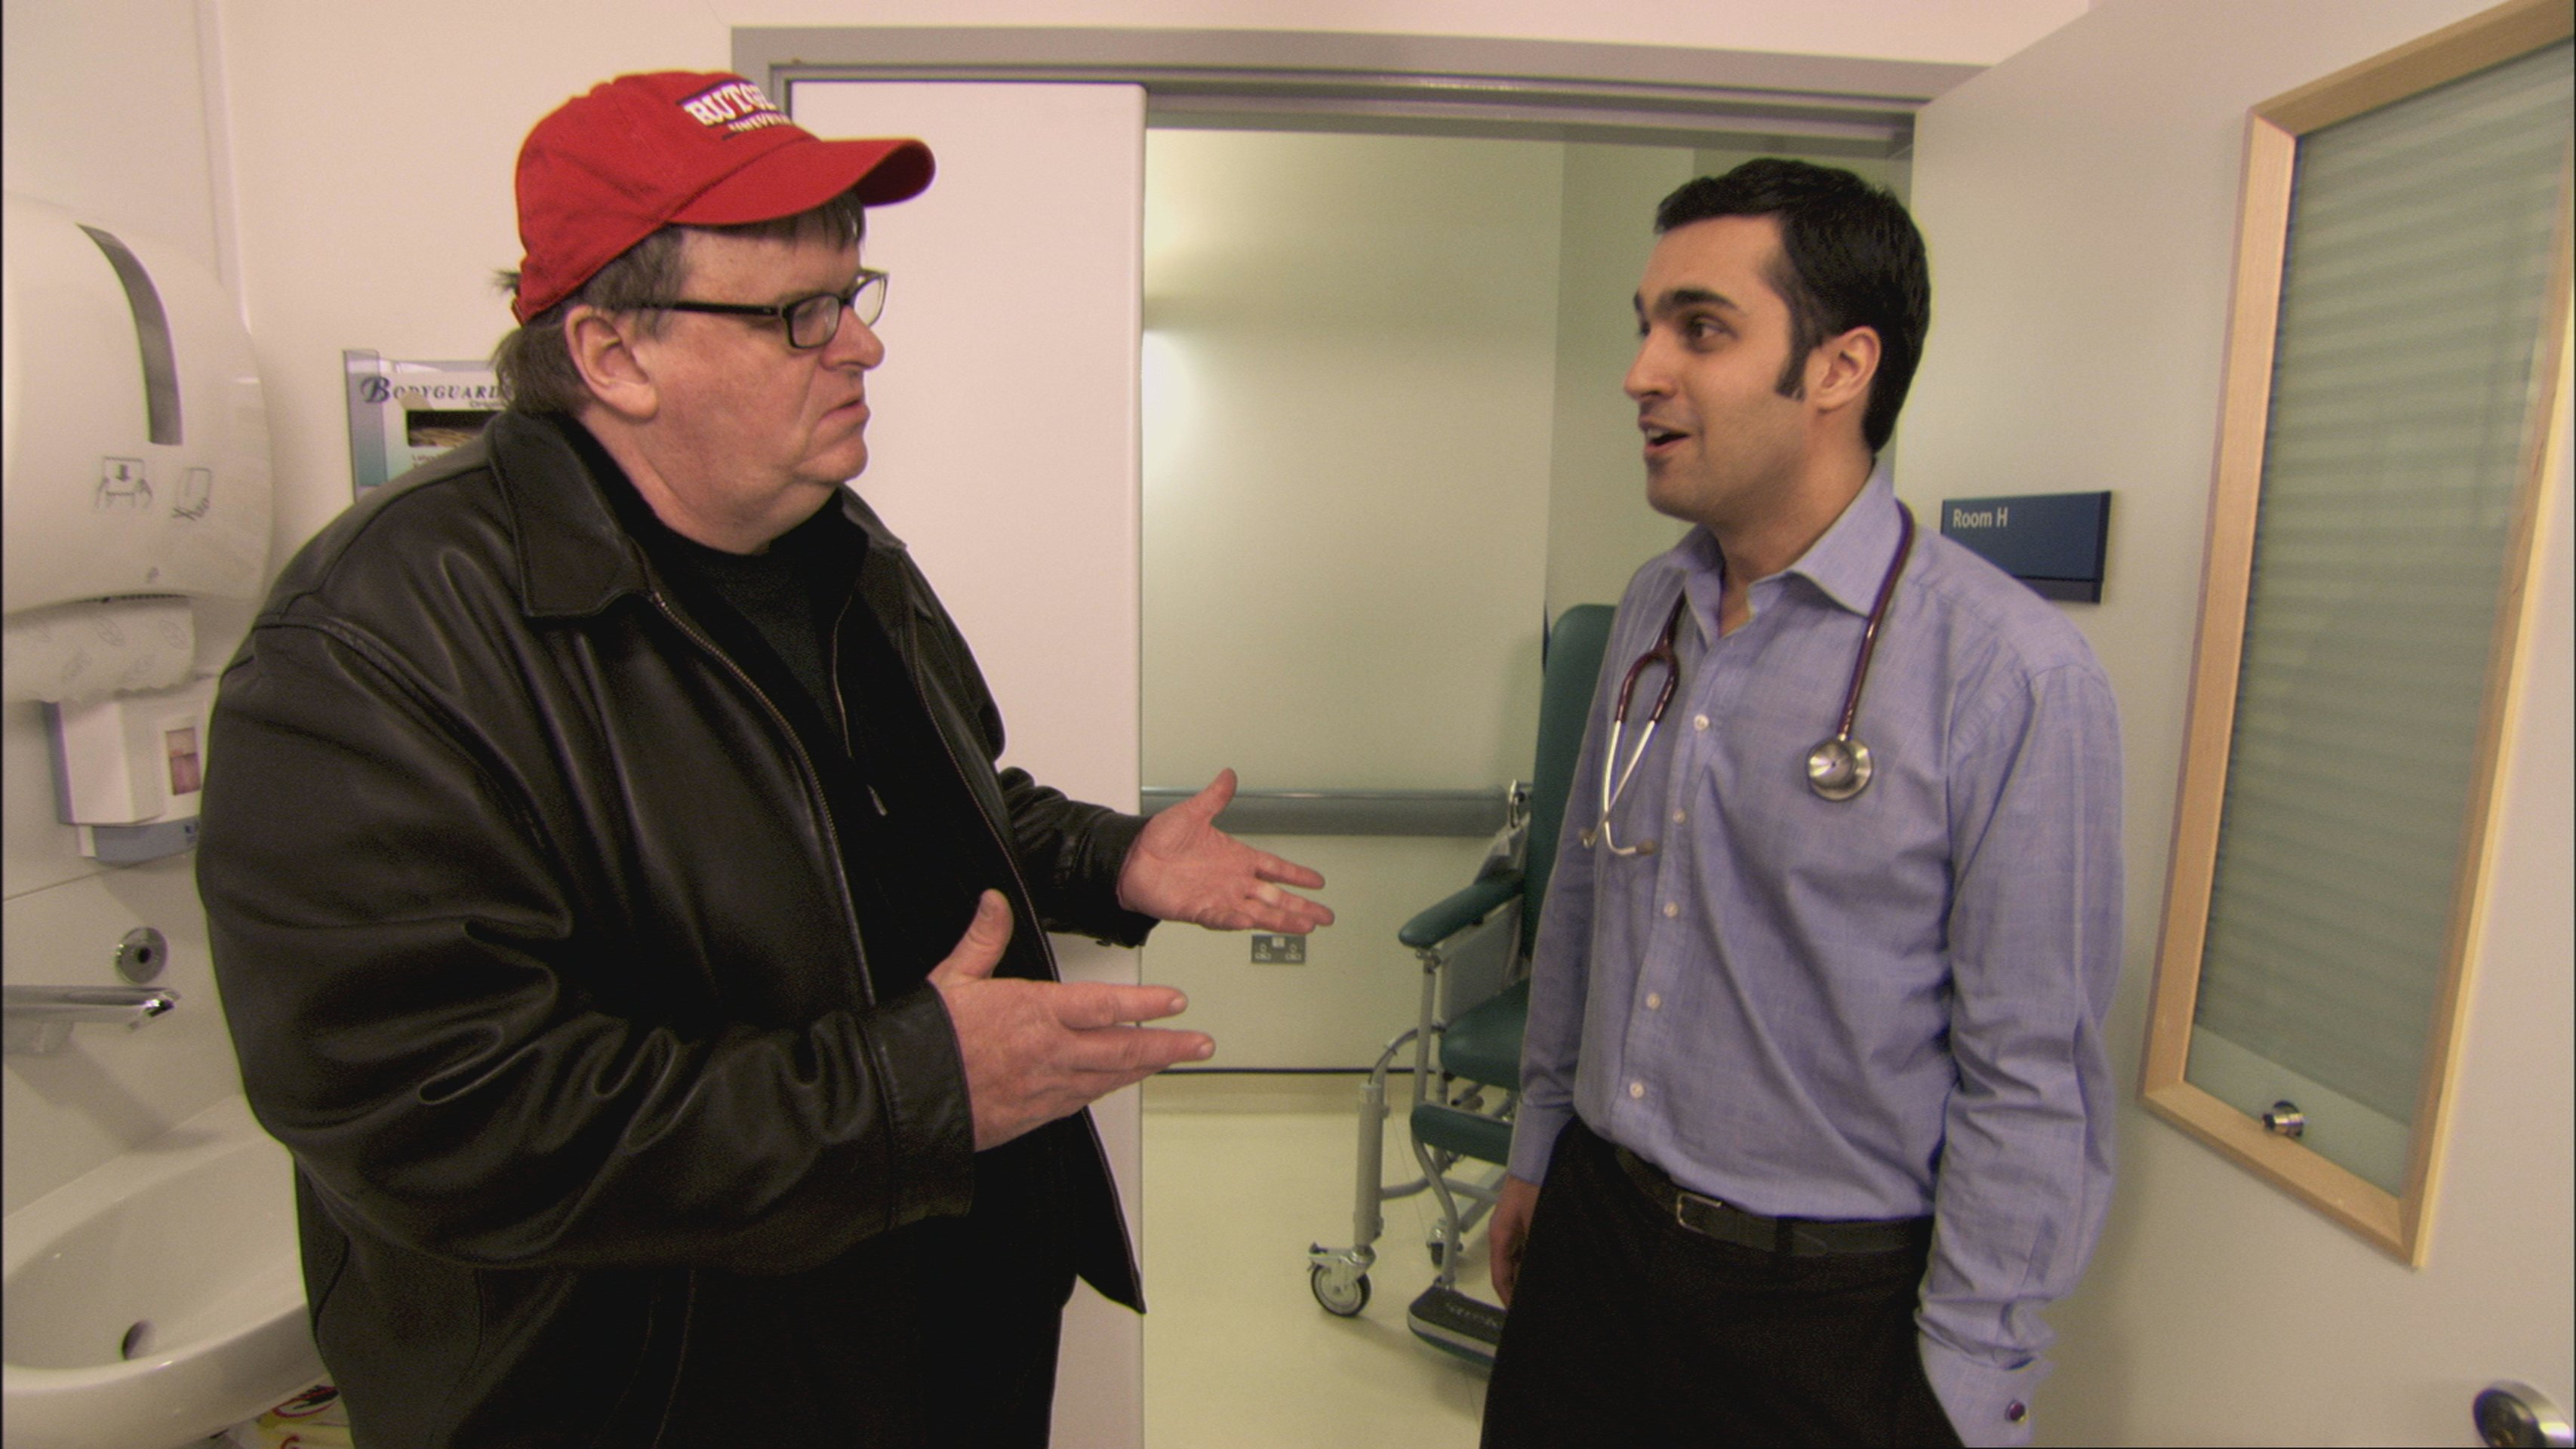 the analysis of the film sicko by michael moore Moore's 'sicko' lands blows on us health care director michael moore's latest documentary, sicko, is an indictment of the us health care systemmelissa block sizes up sicko — as entertainment and expose — with film critic bob mondello and science correspondent joanne silberner.